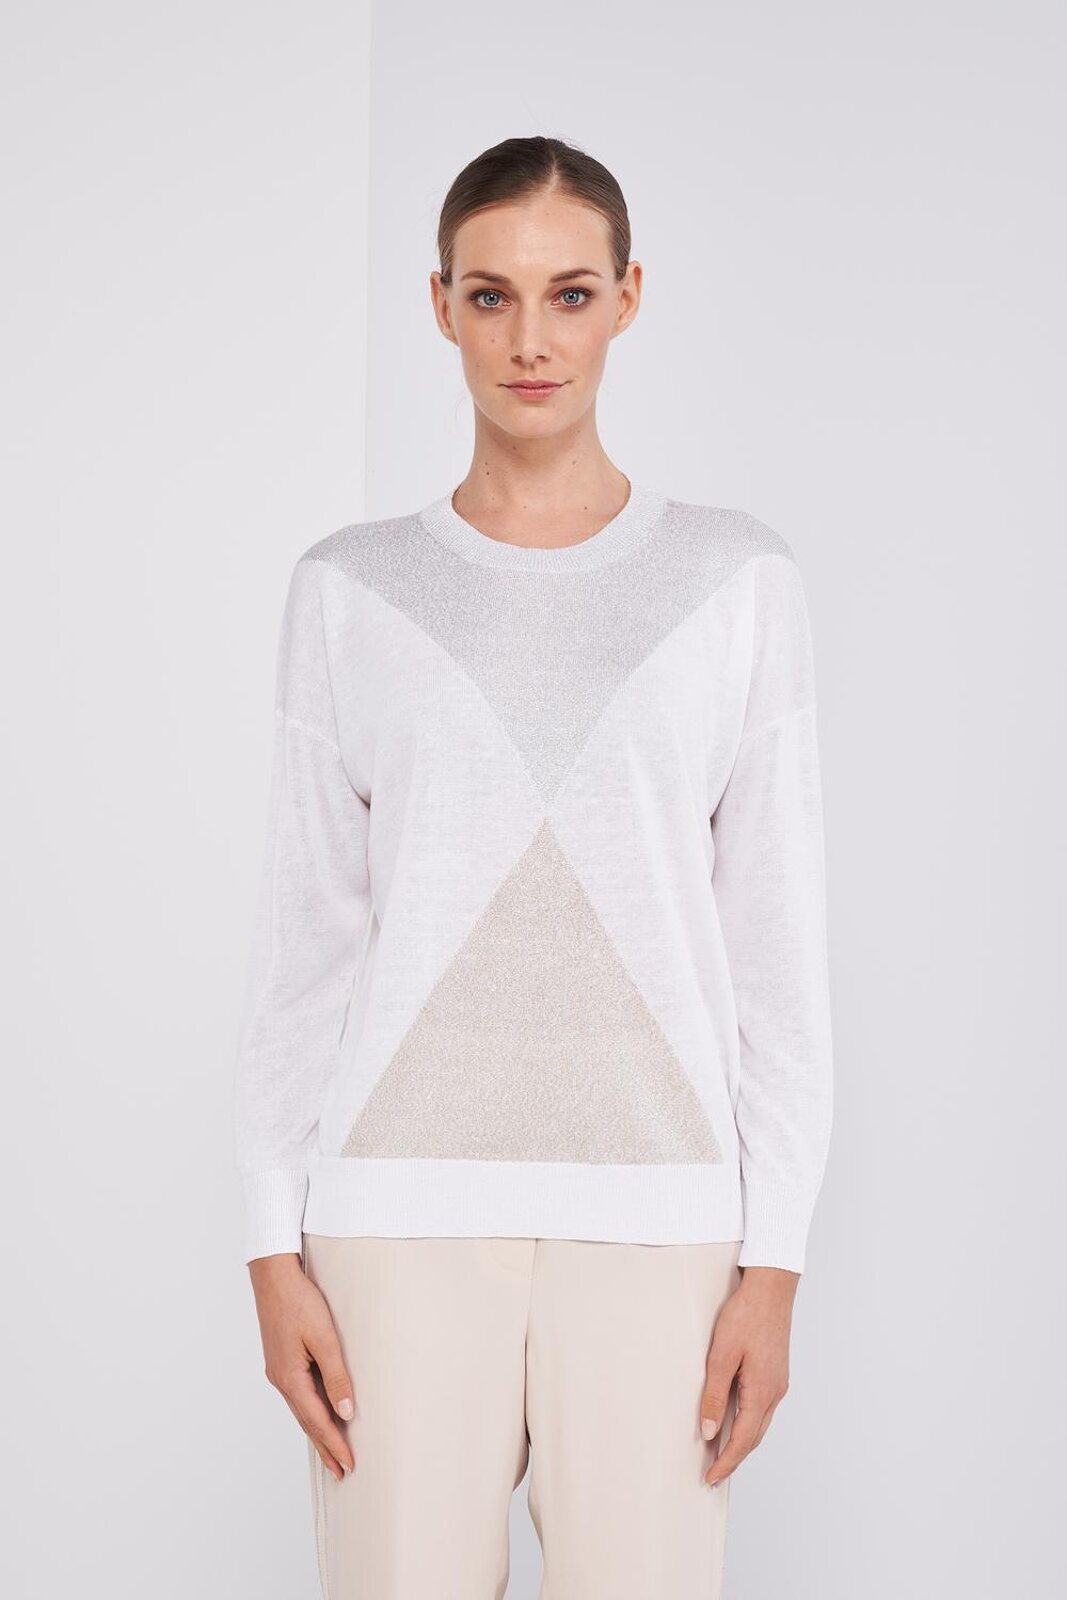 Crewneck Cotton And Linen Tricot Sweater. Long Sleeve, Diamond Pattern With Lurex Threads, Ribbed Neckline, Cuffs And Bottom. Regular fit. - Peserico